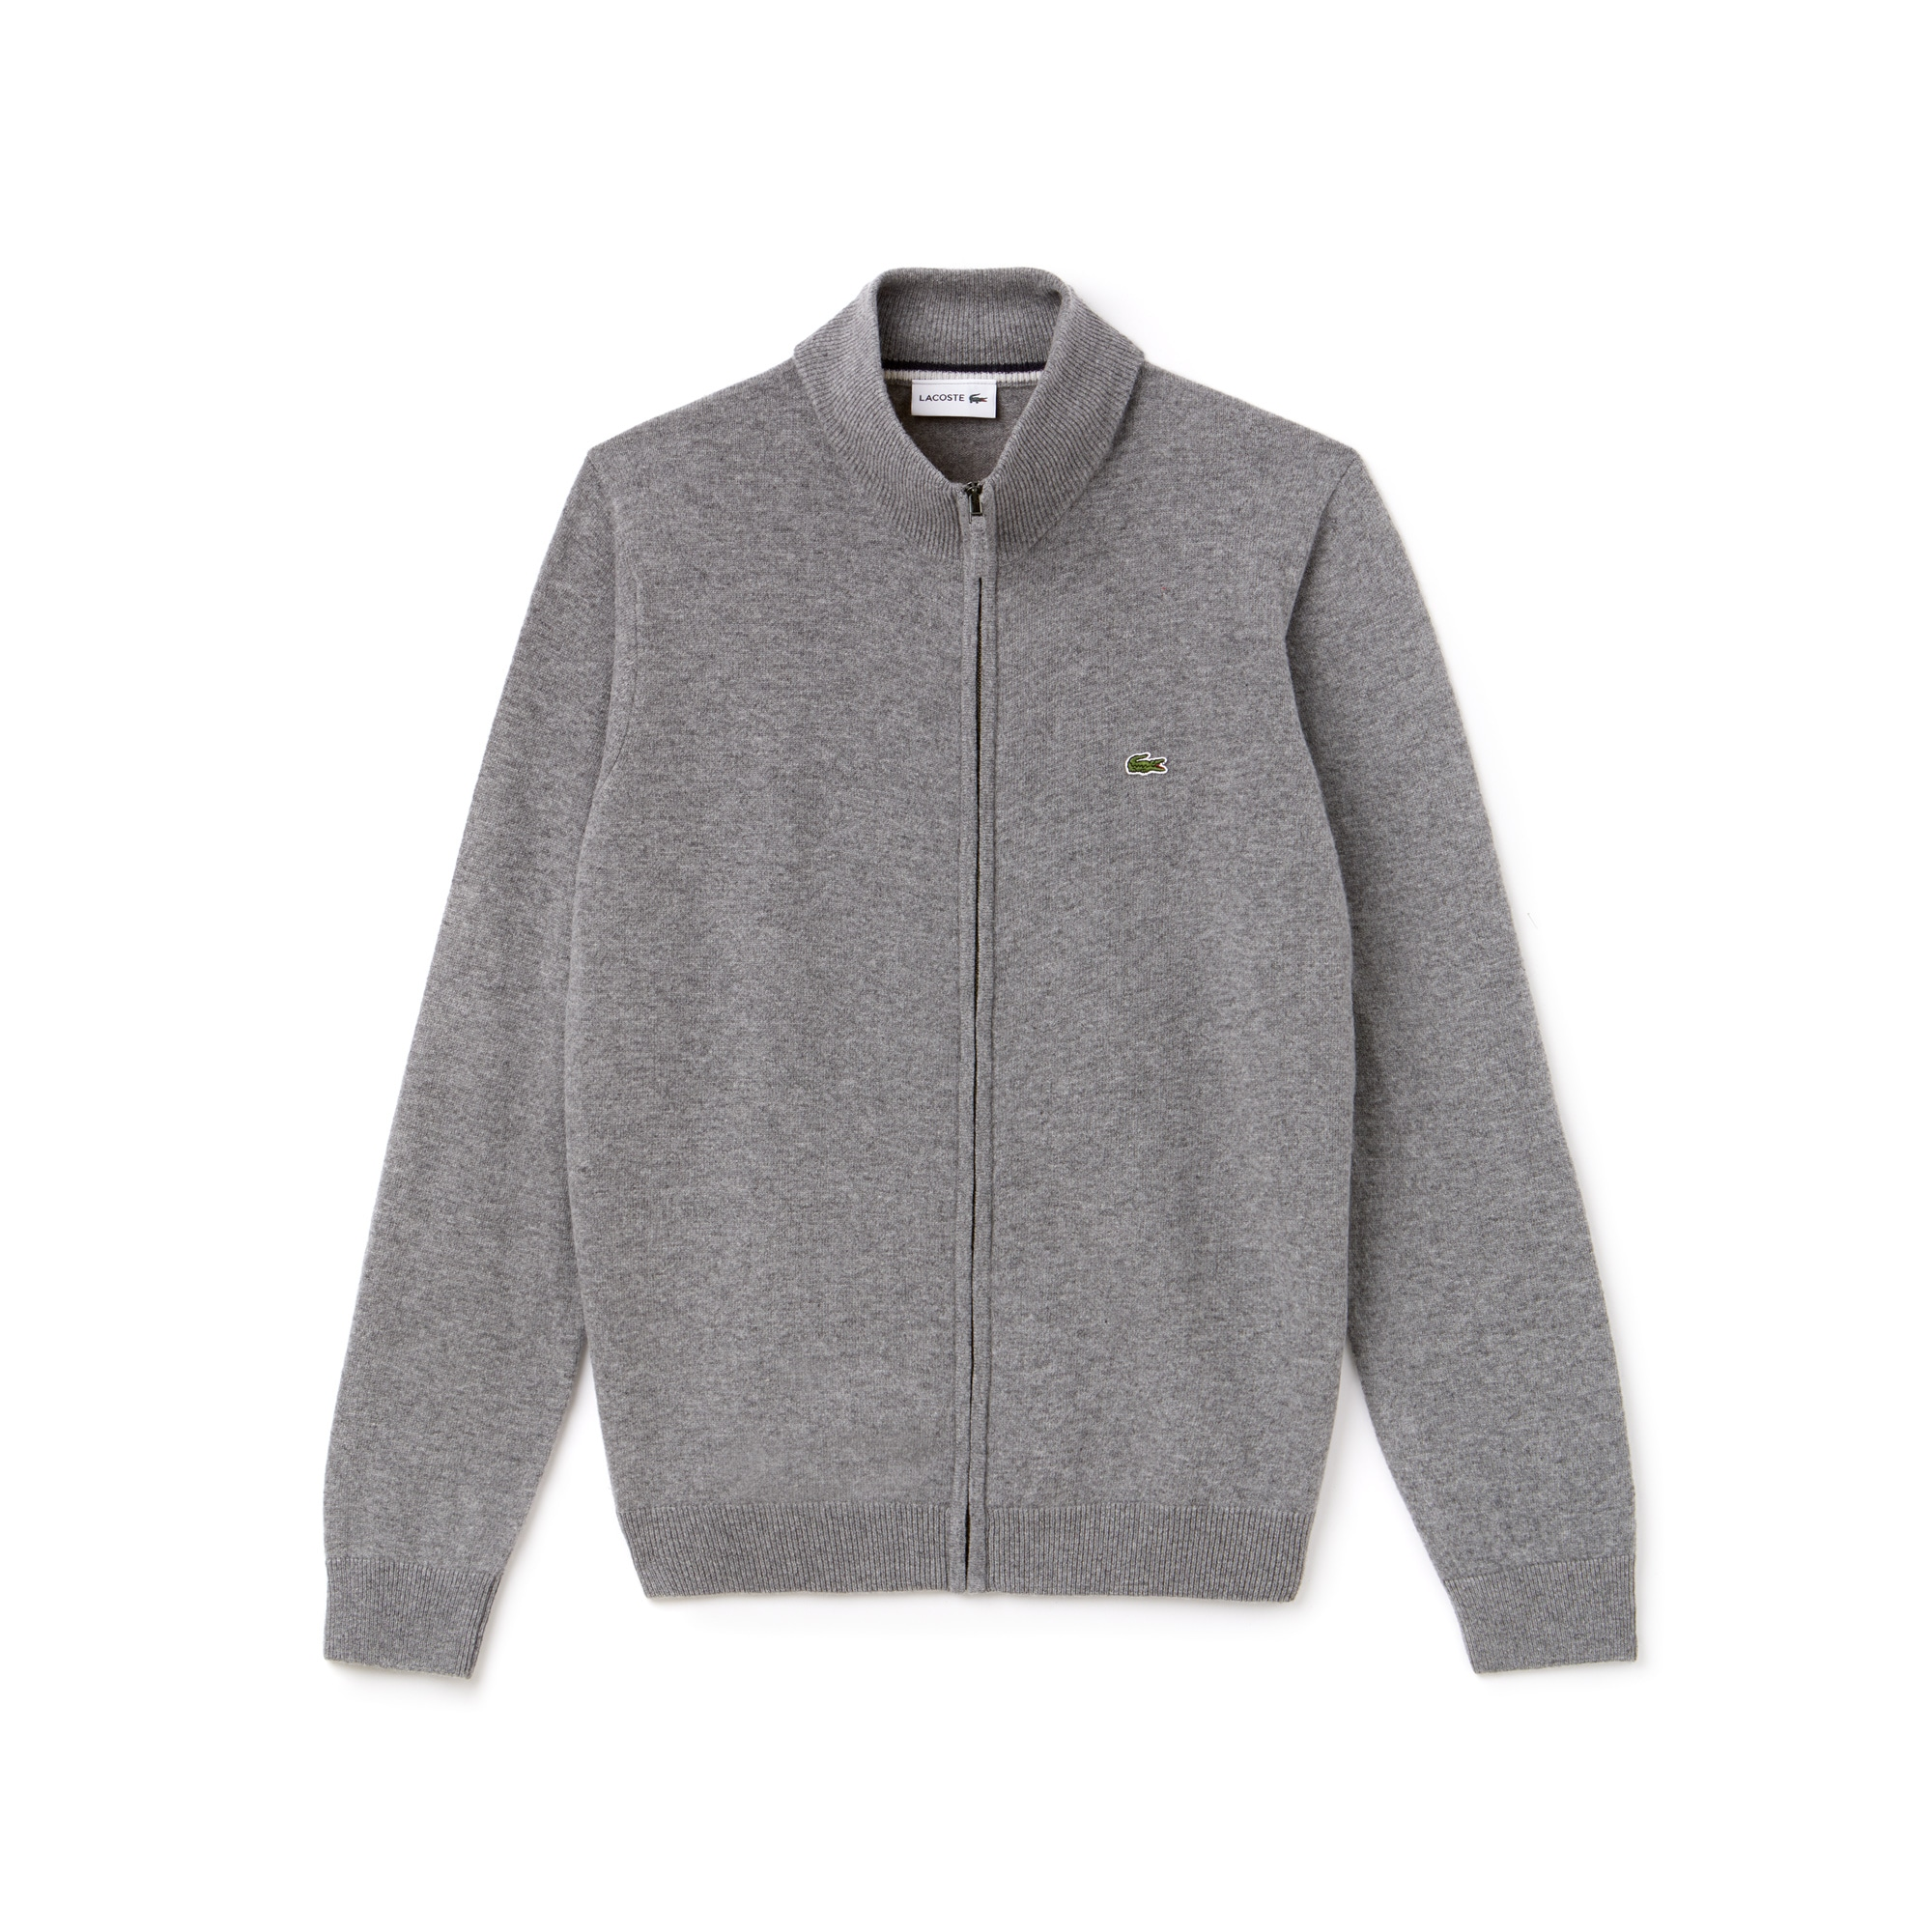 Pull Vêtements Homme Lacoste Pull Pull Homme Lacoste Homme